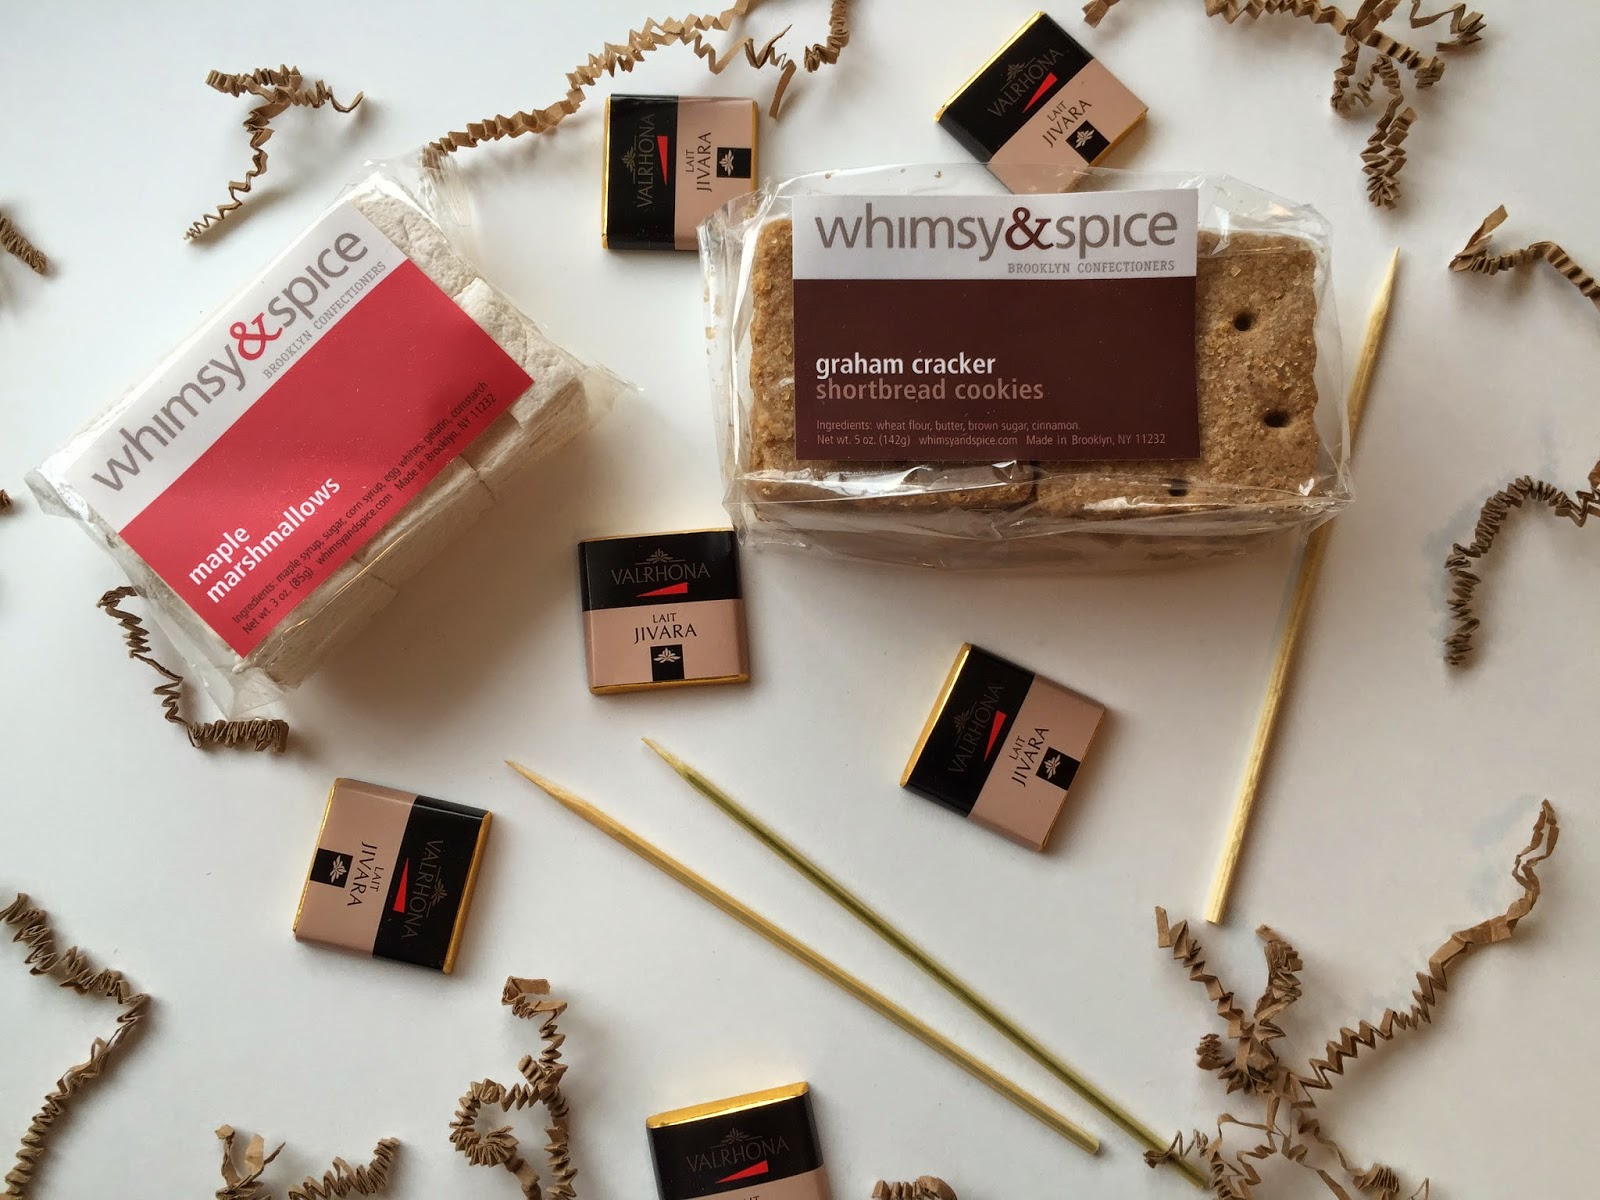 whimsy and spice smores kit